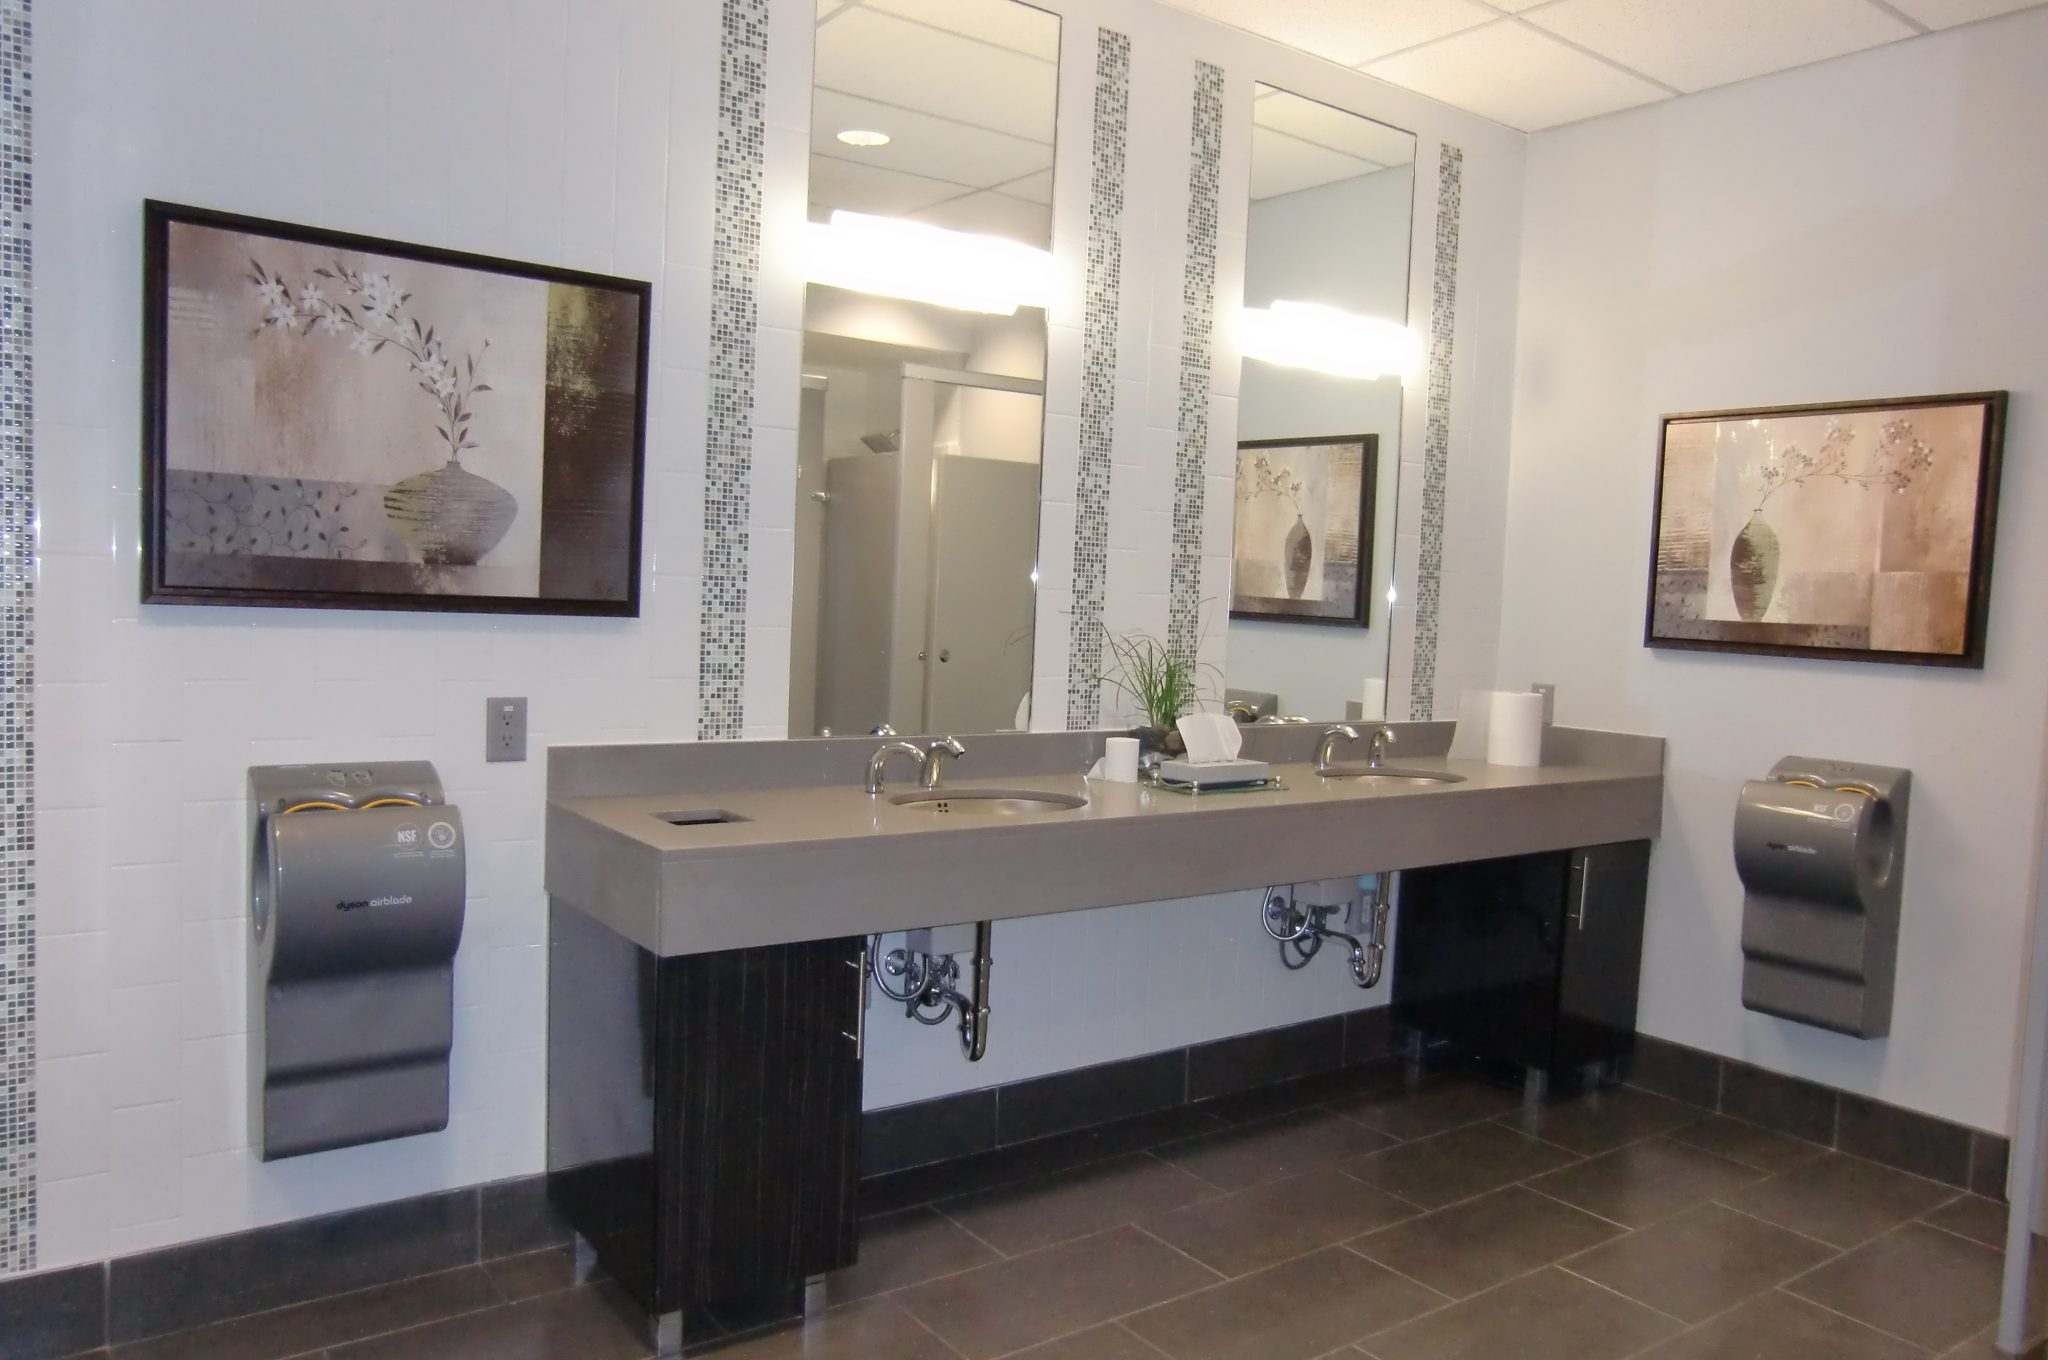 Construction Renovation office washroom Vancouver